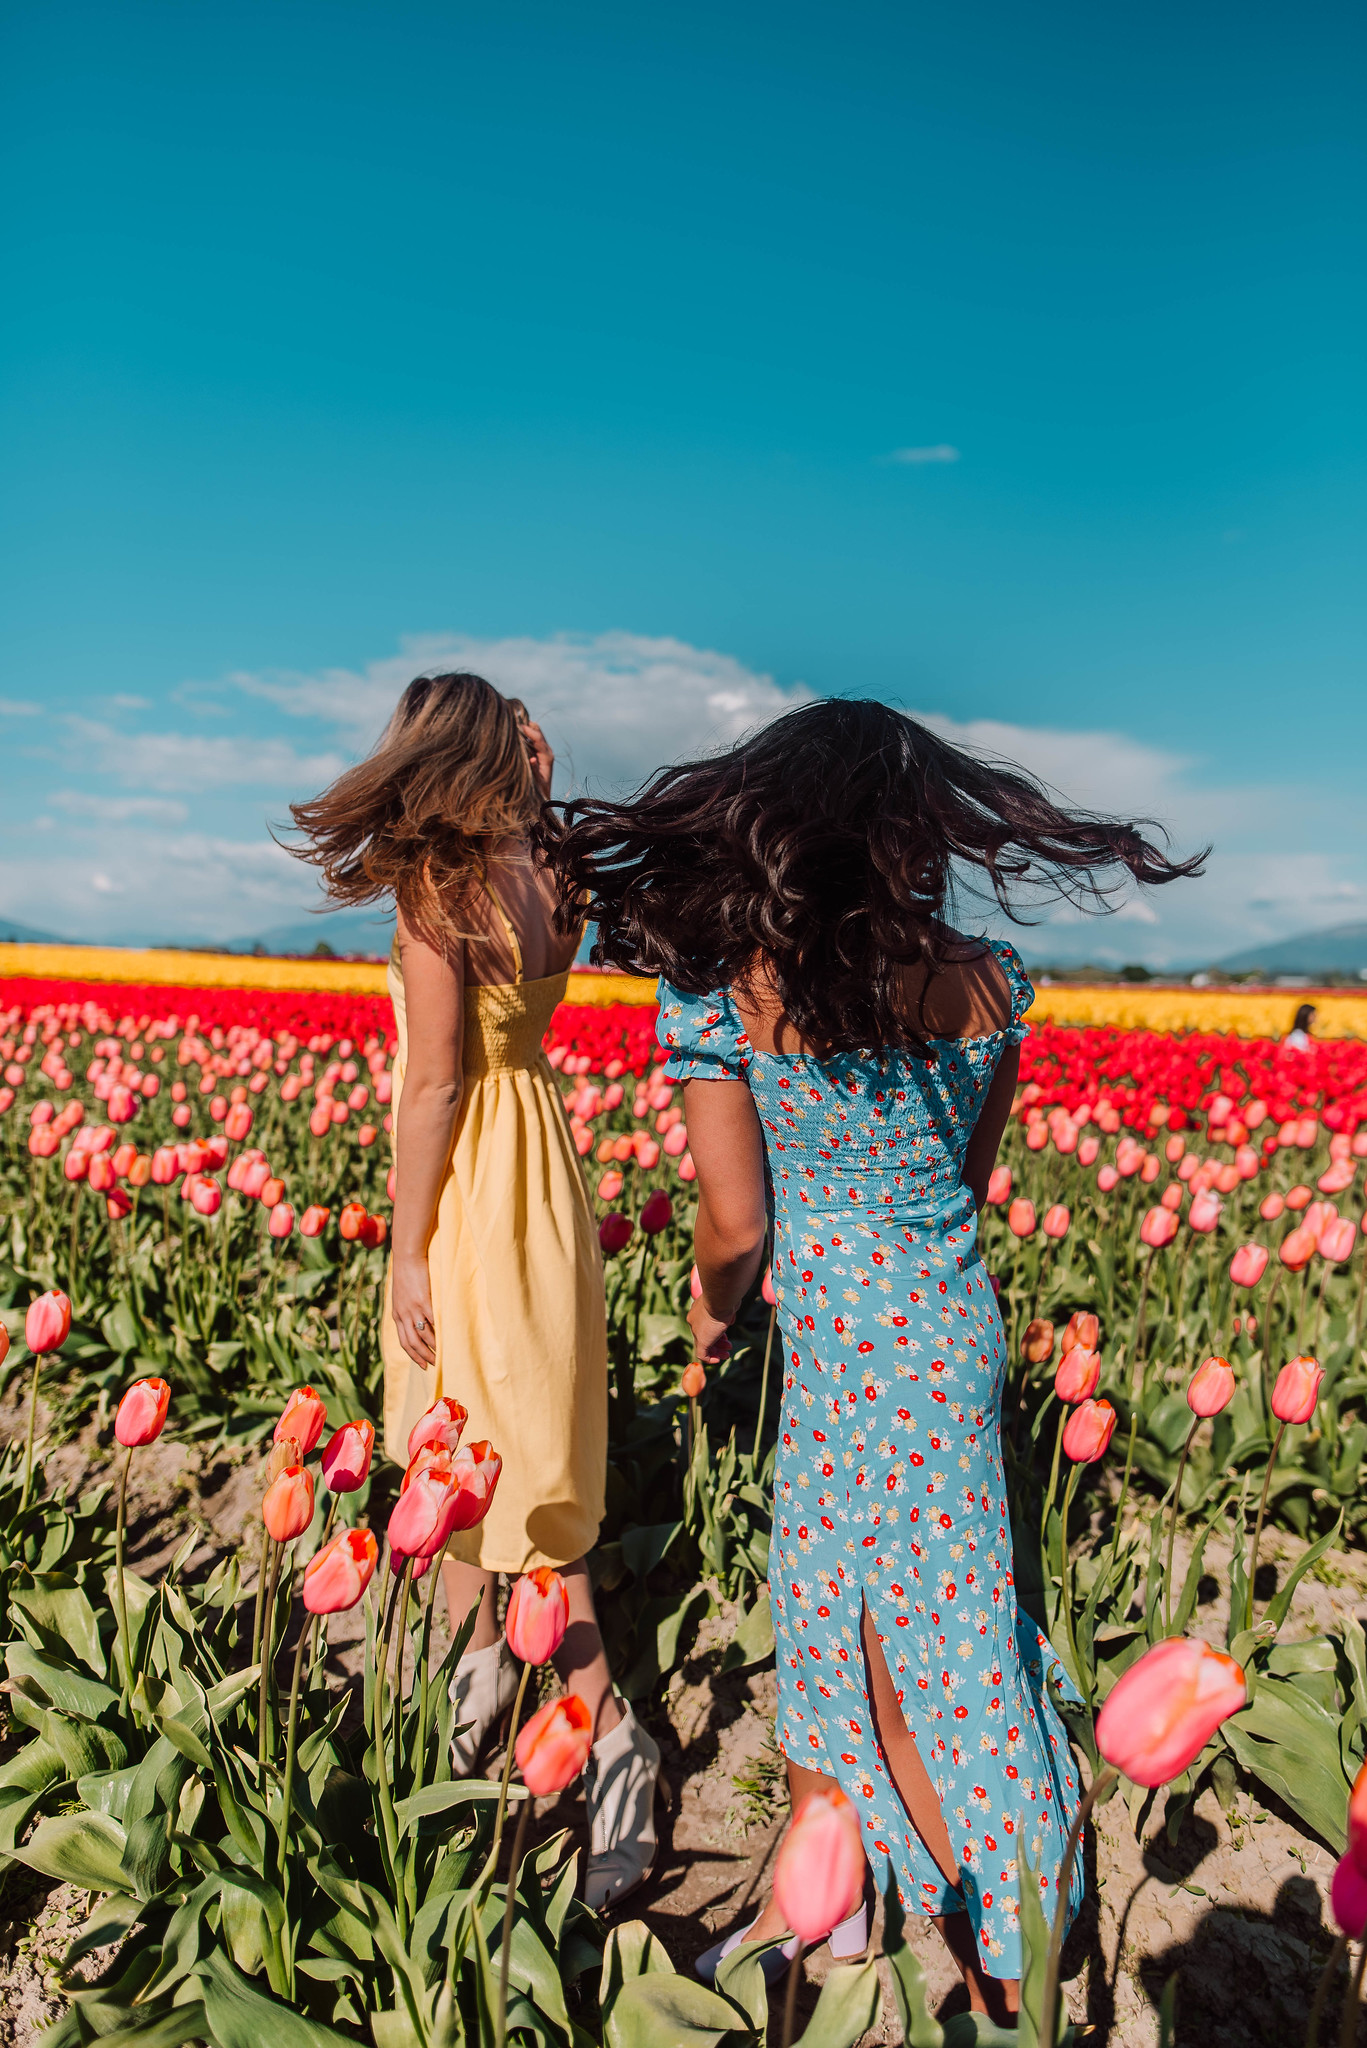 whip your hair back and forth - rows of tulips